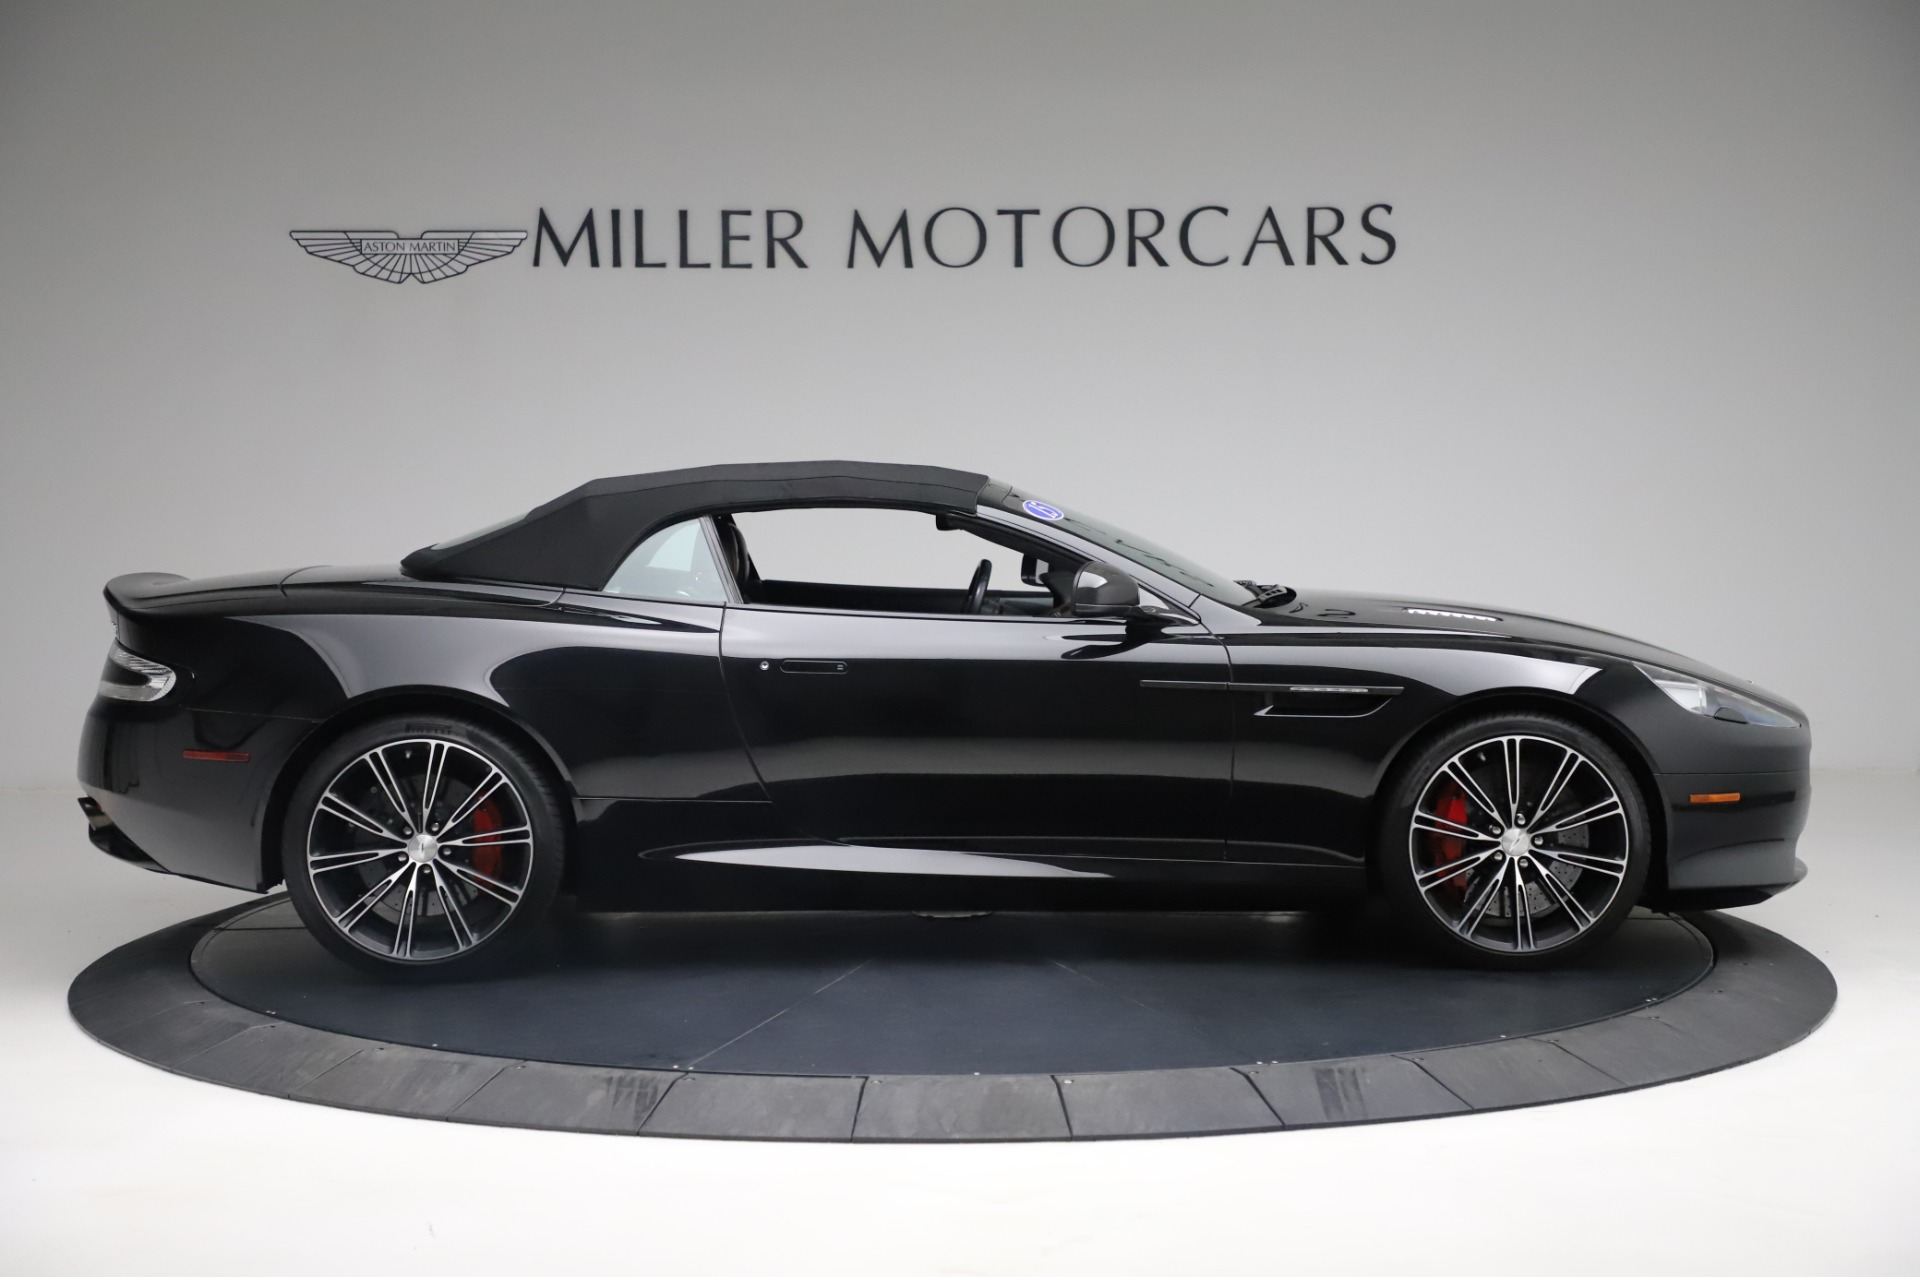 Used 2015 Aston Martin DB9 Convertible For Sale In Westport, CT 1919_p18